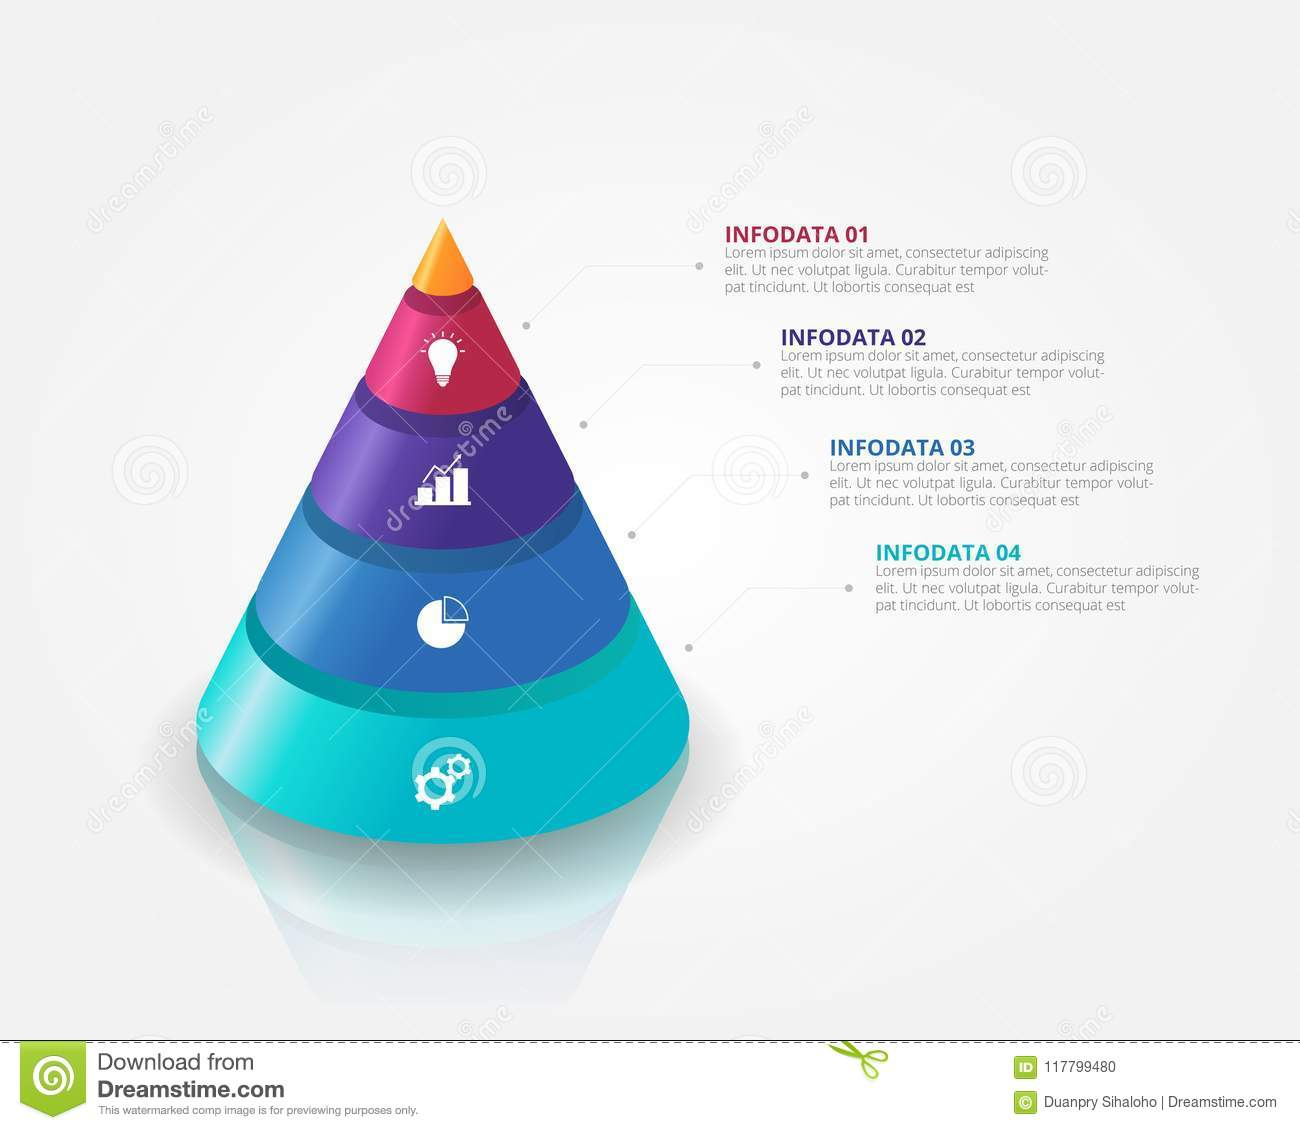 Download 3D Cone Pyramid Infographics Template For Business Education Web Design Banners